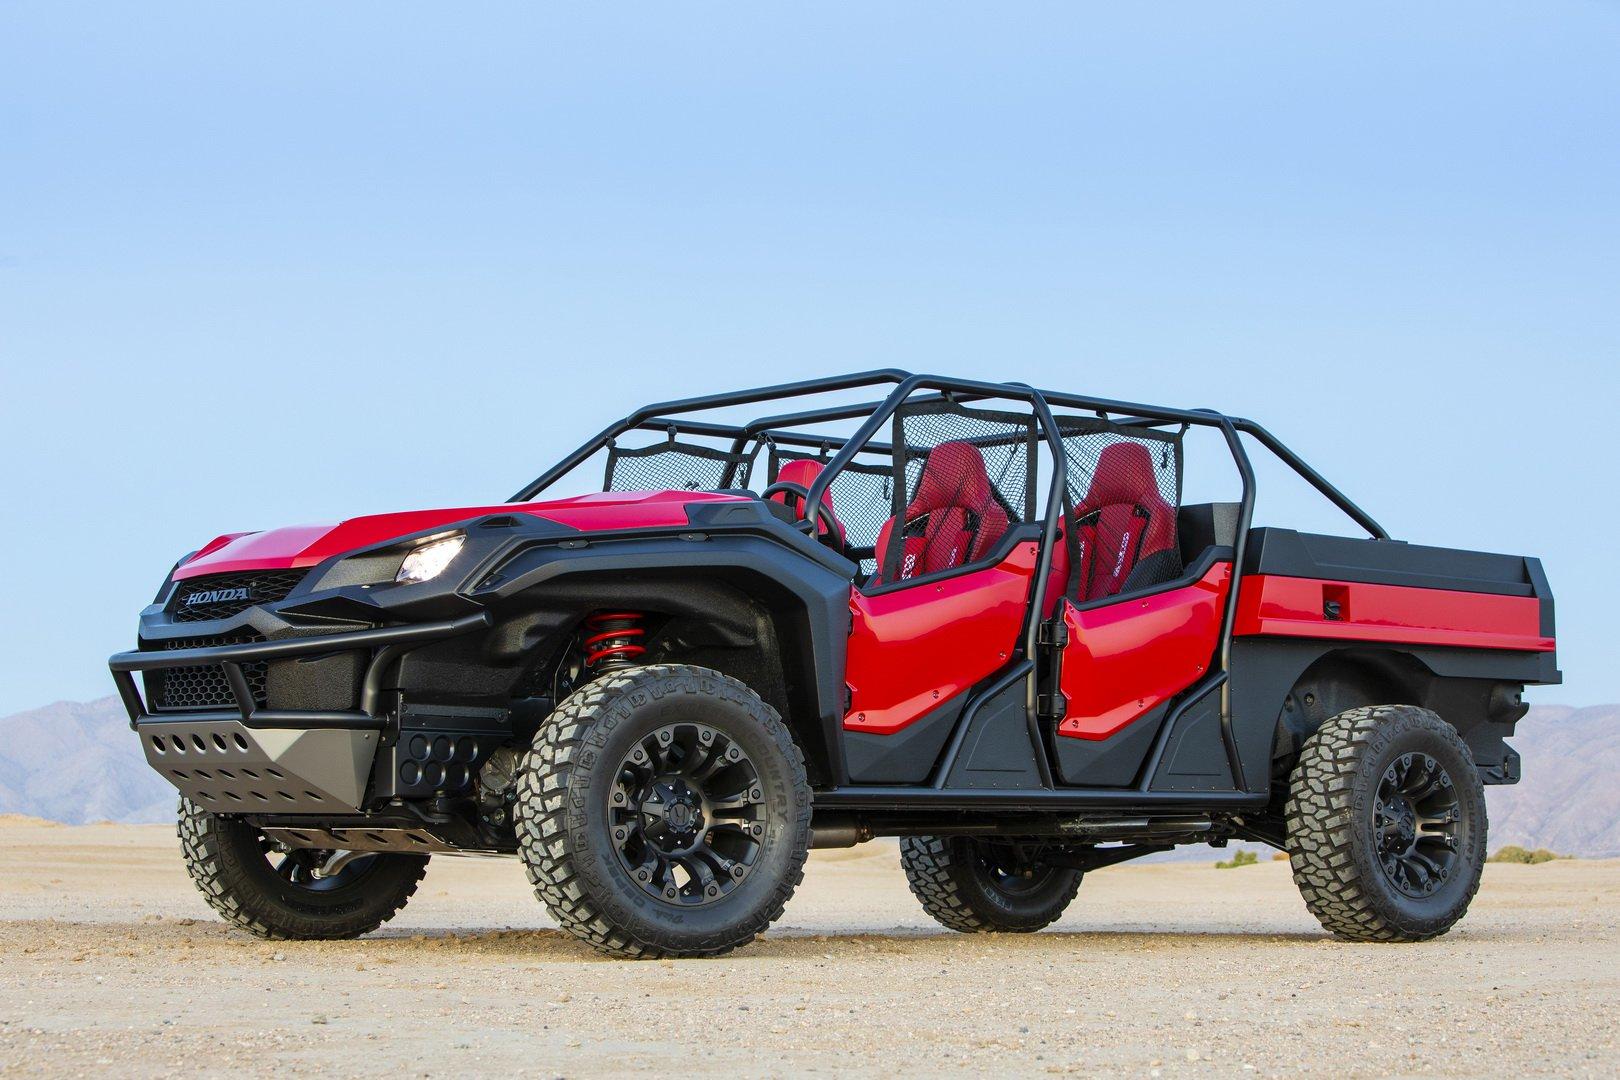 Honda Rugged Open Air Concept (4)